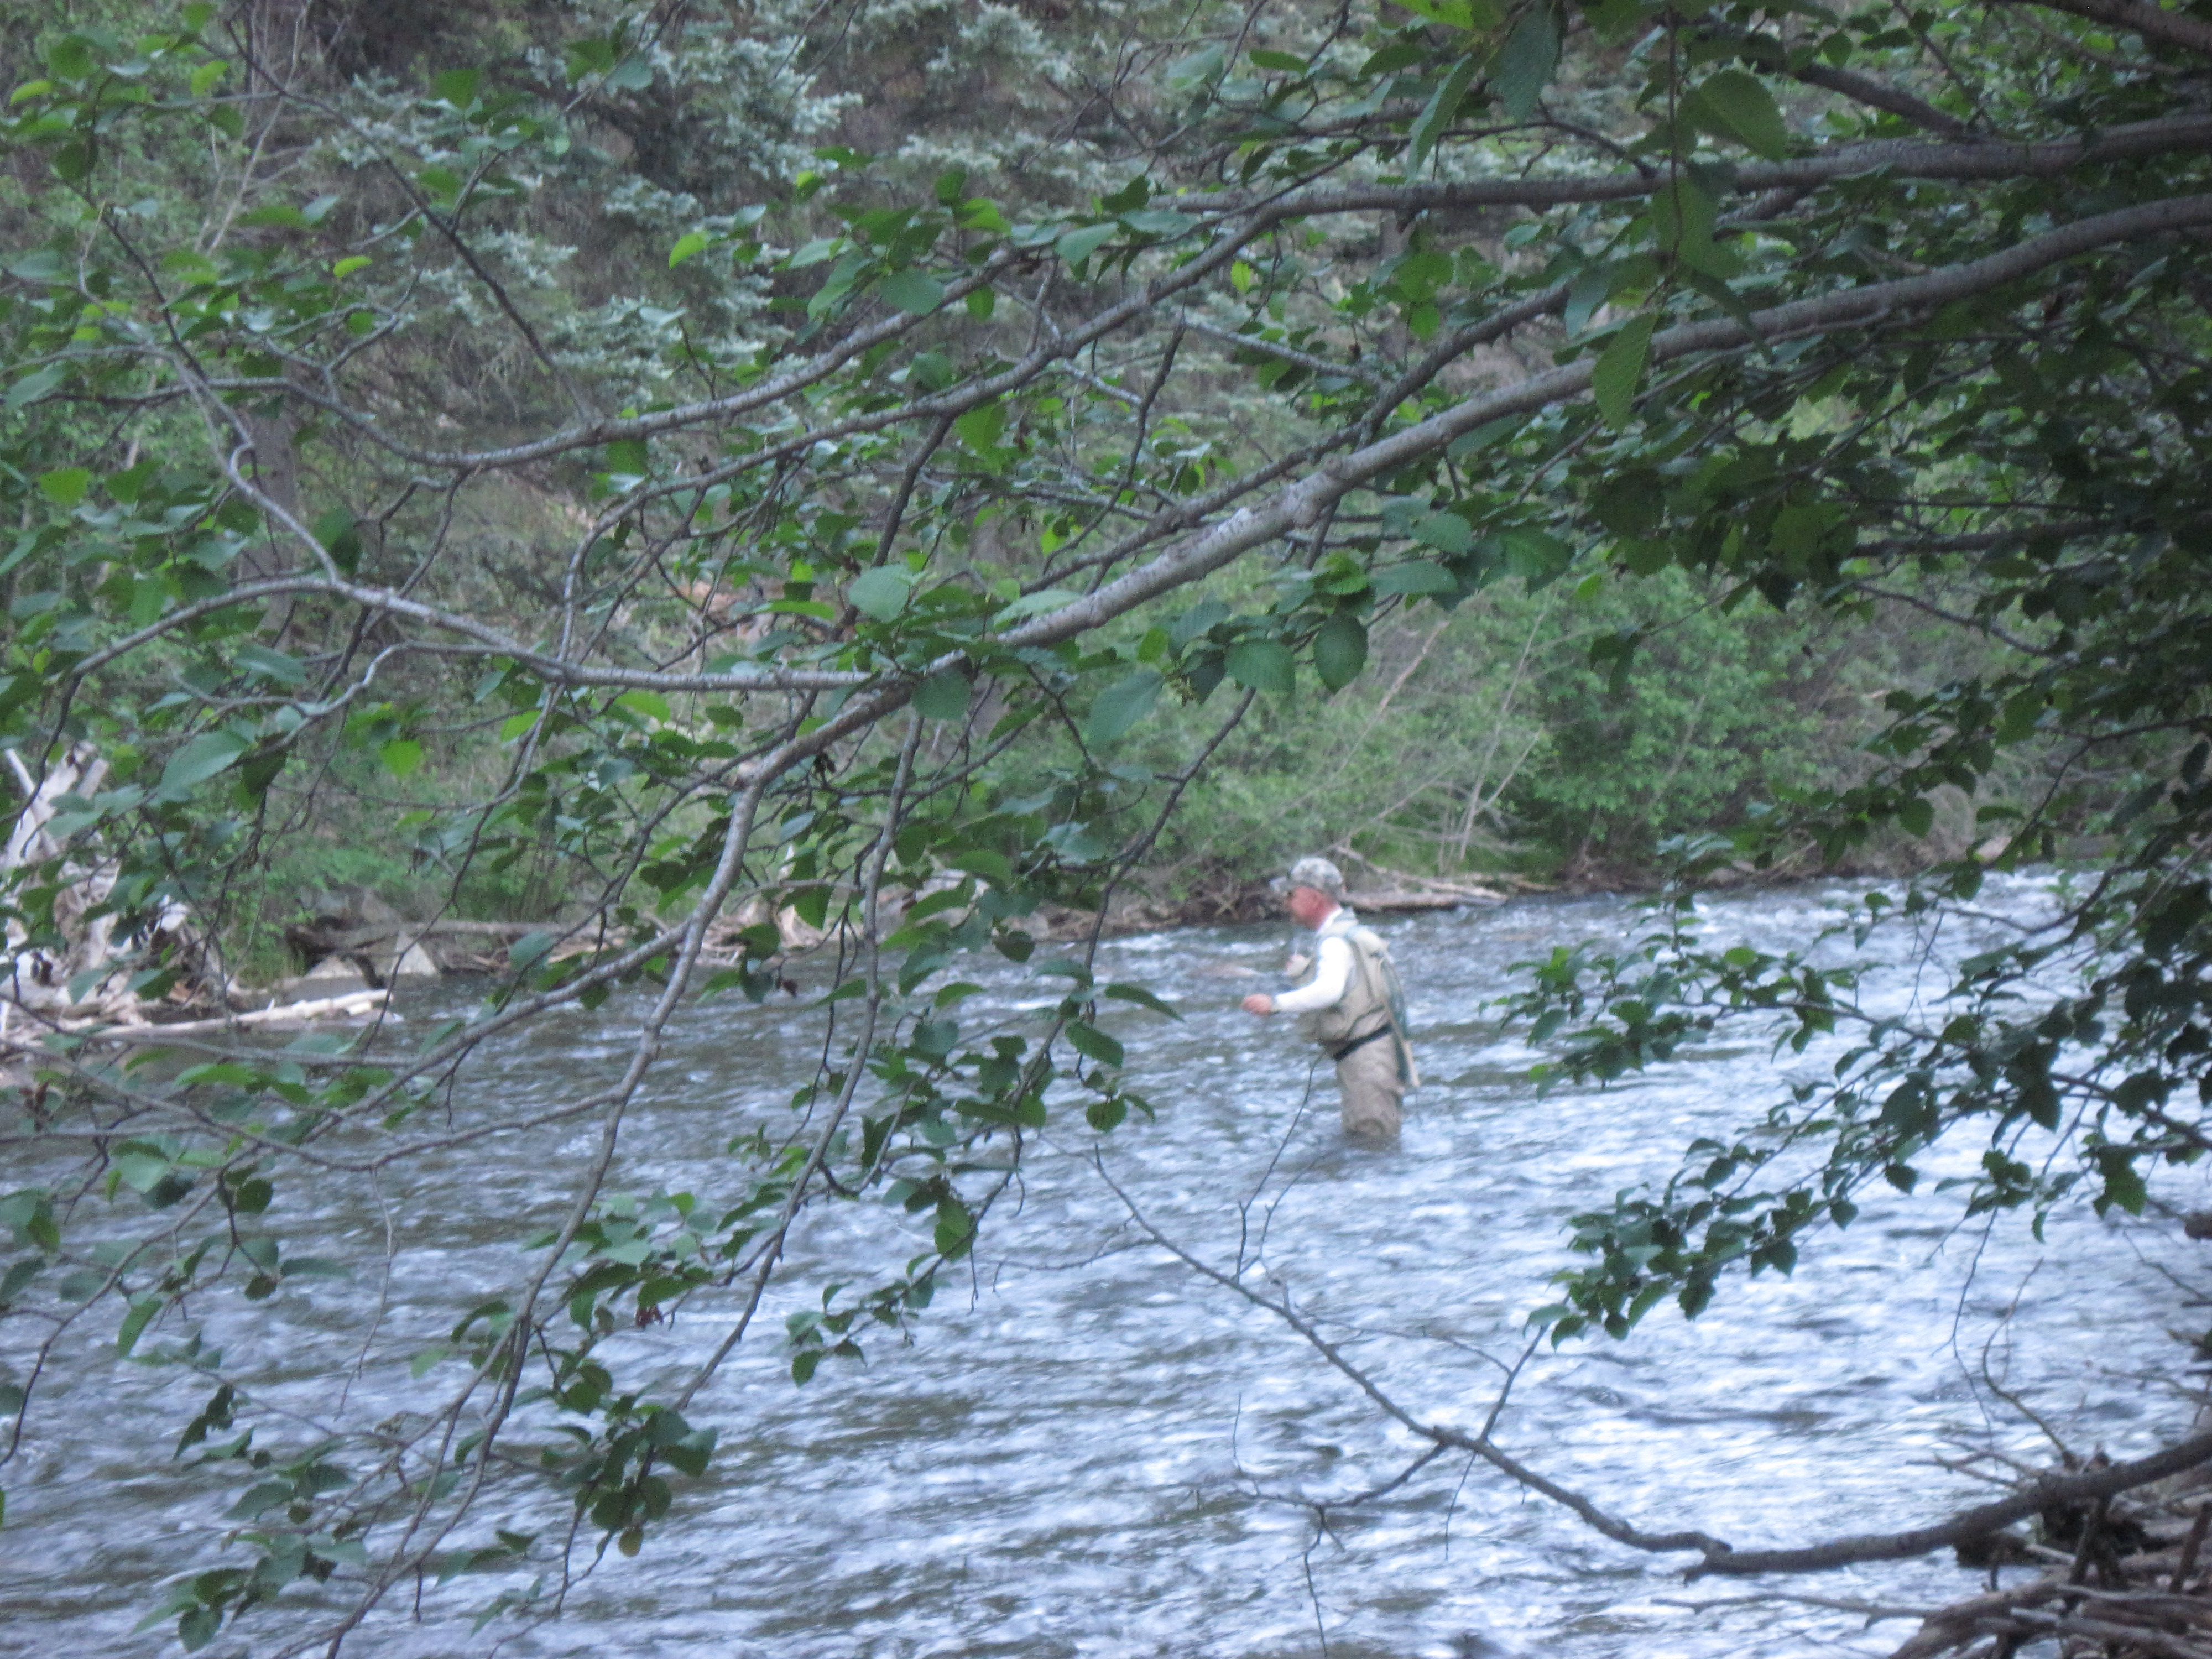 Man fishing on the Pecos River